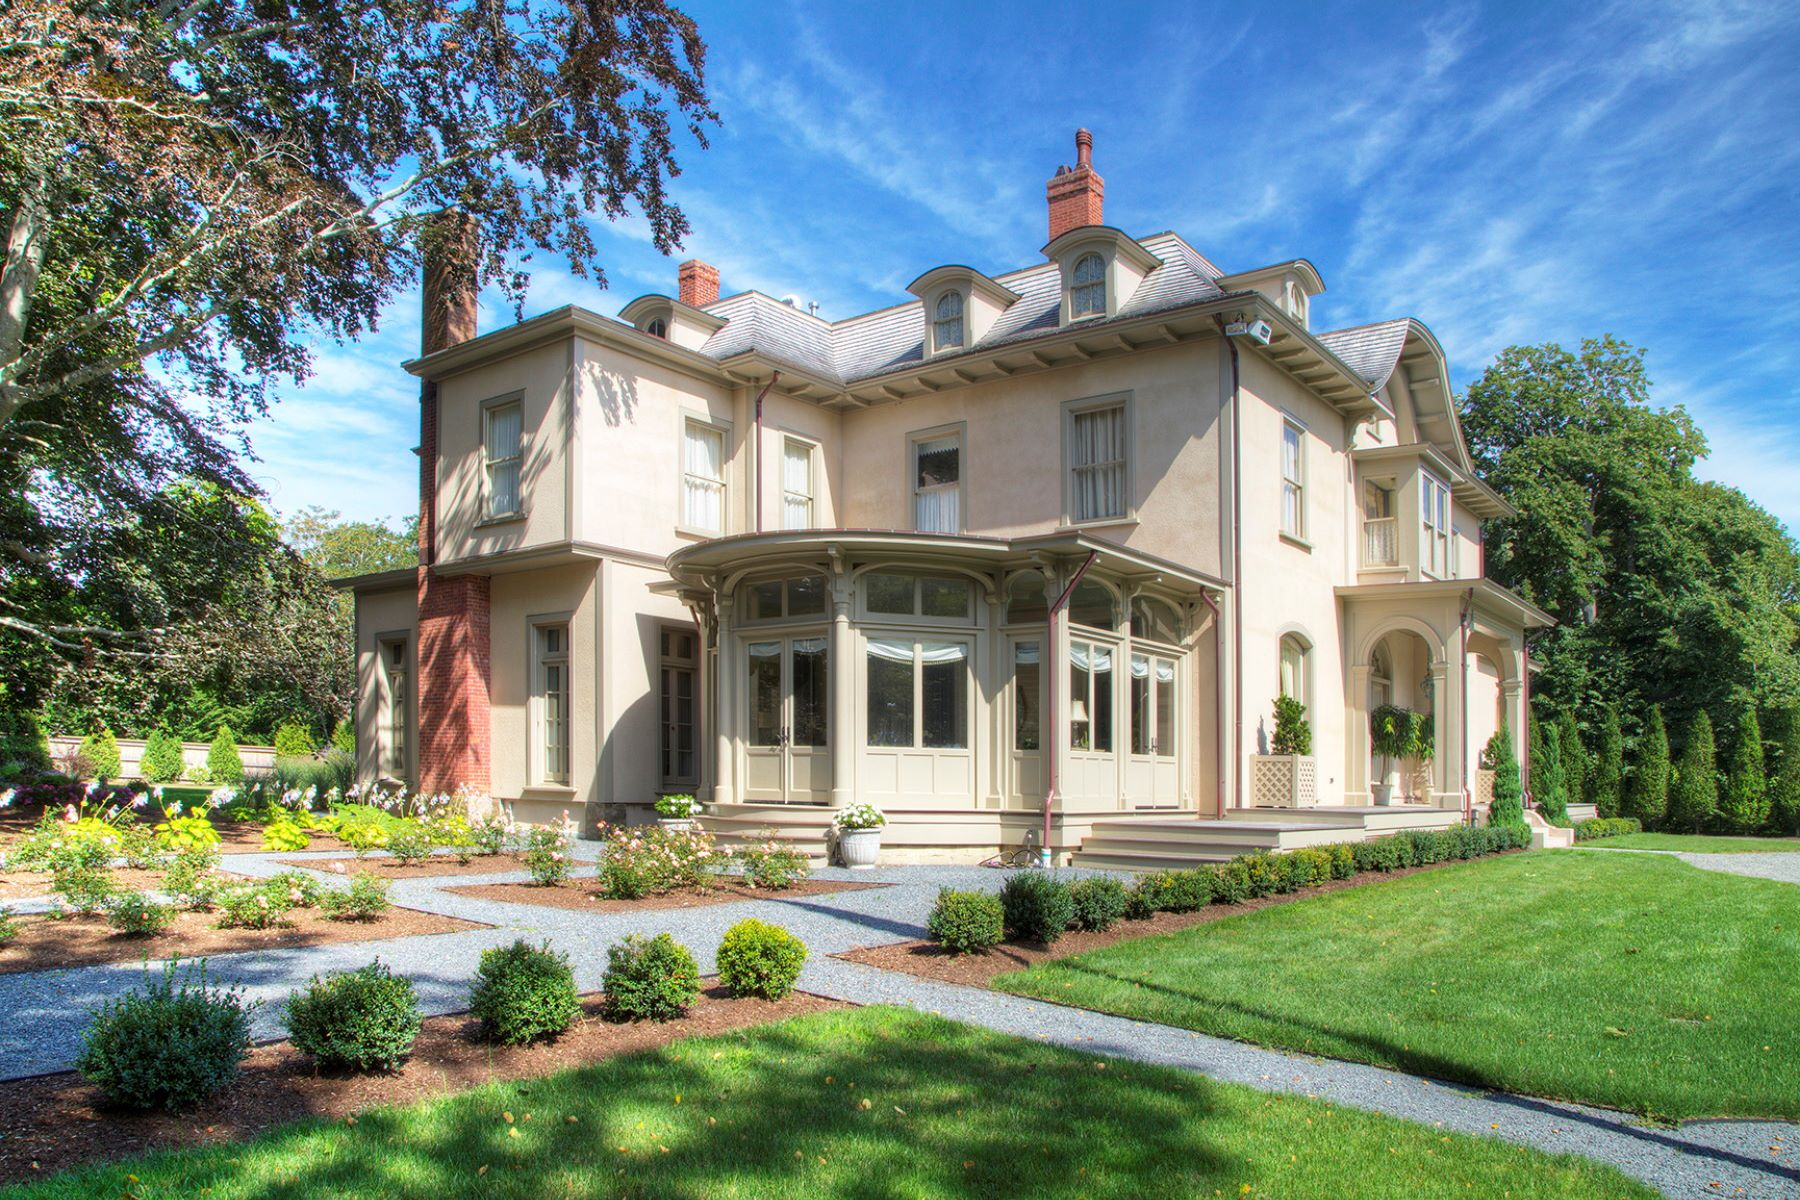 Additional photo for property listing at Historic Quatrel on Bellevue 673 Bellevue Avenue Newport, Rhode Island 02840 États-Unis